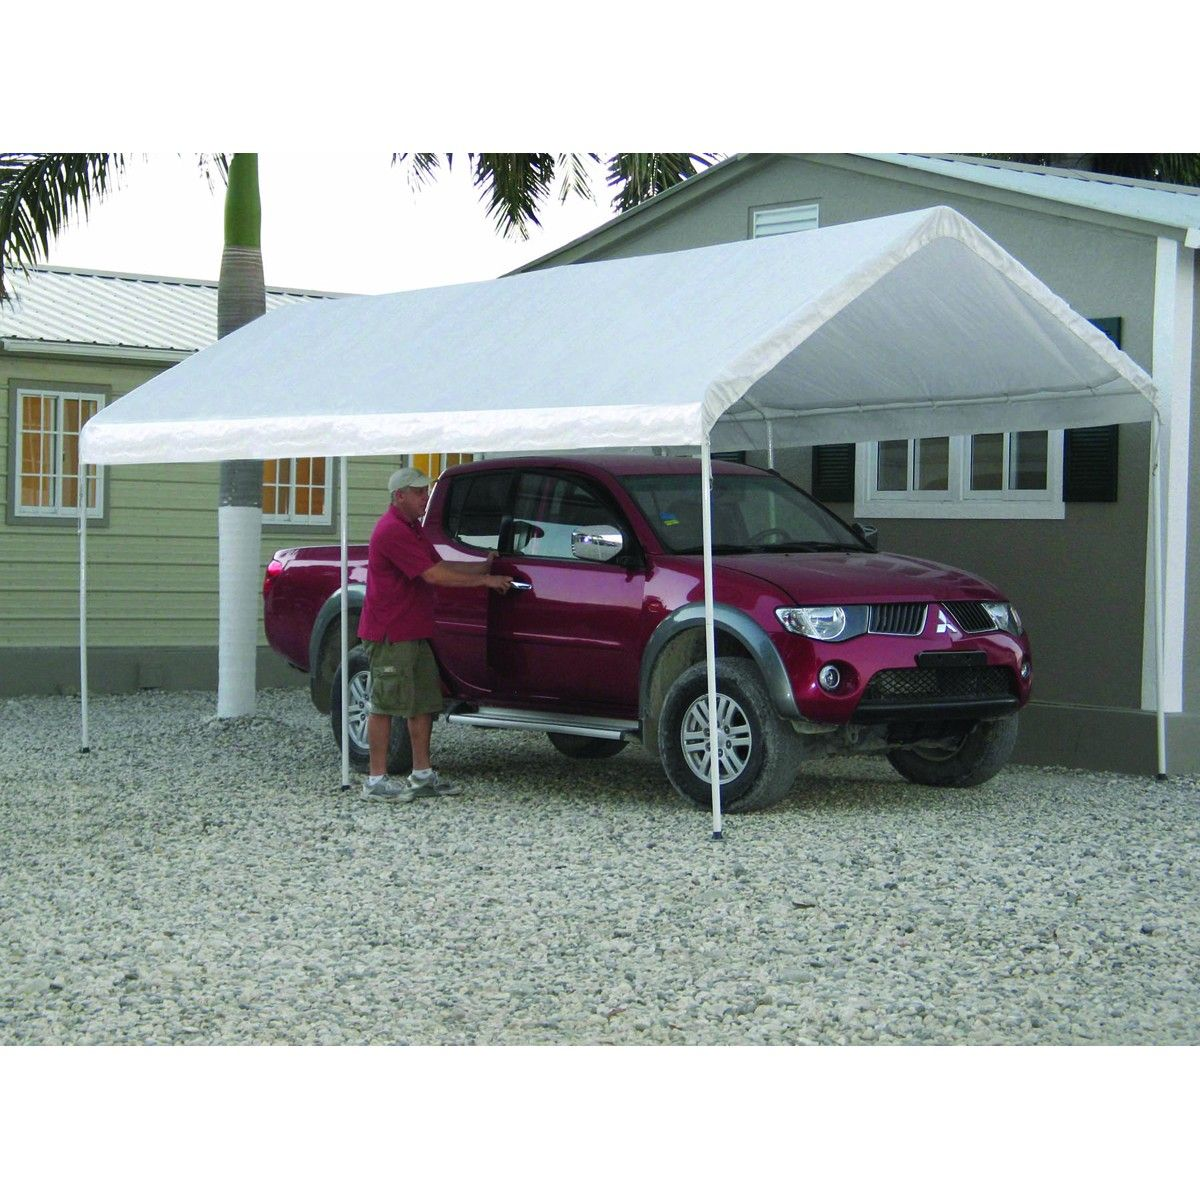 10 Ft. x 20 Ft. Portable Car Canopy Canopy tent, Car